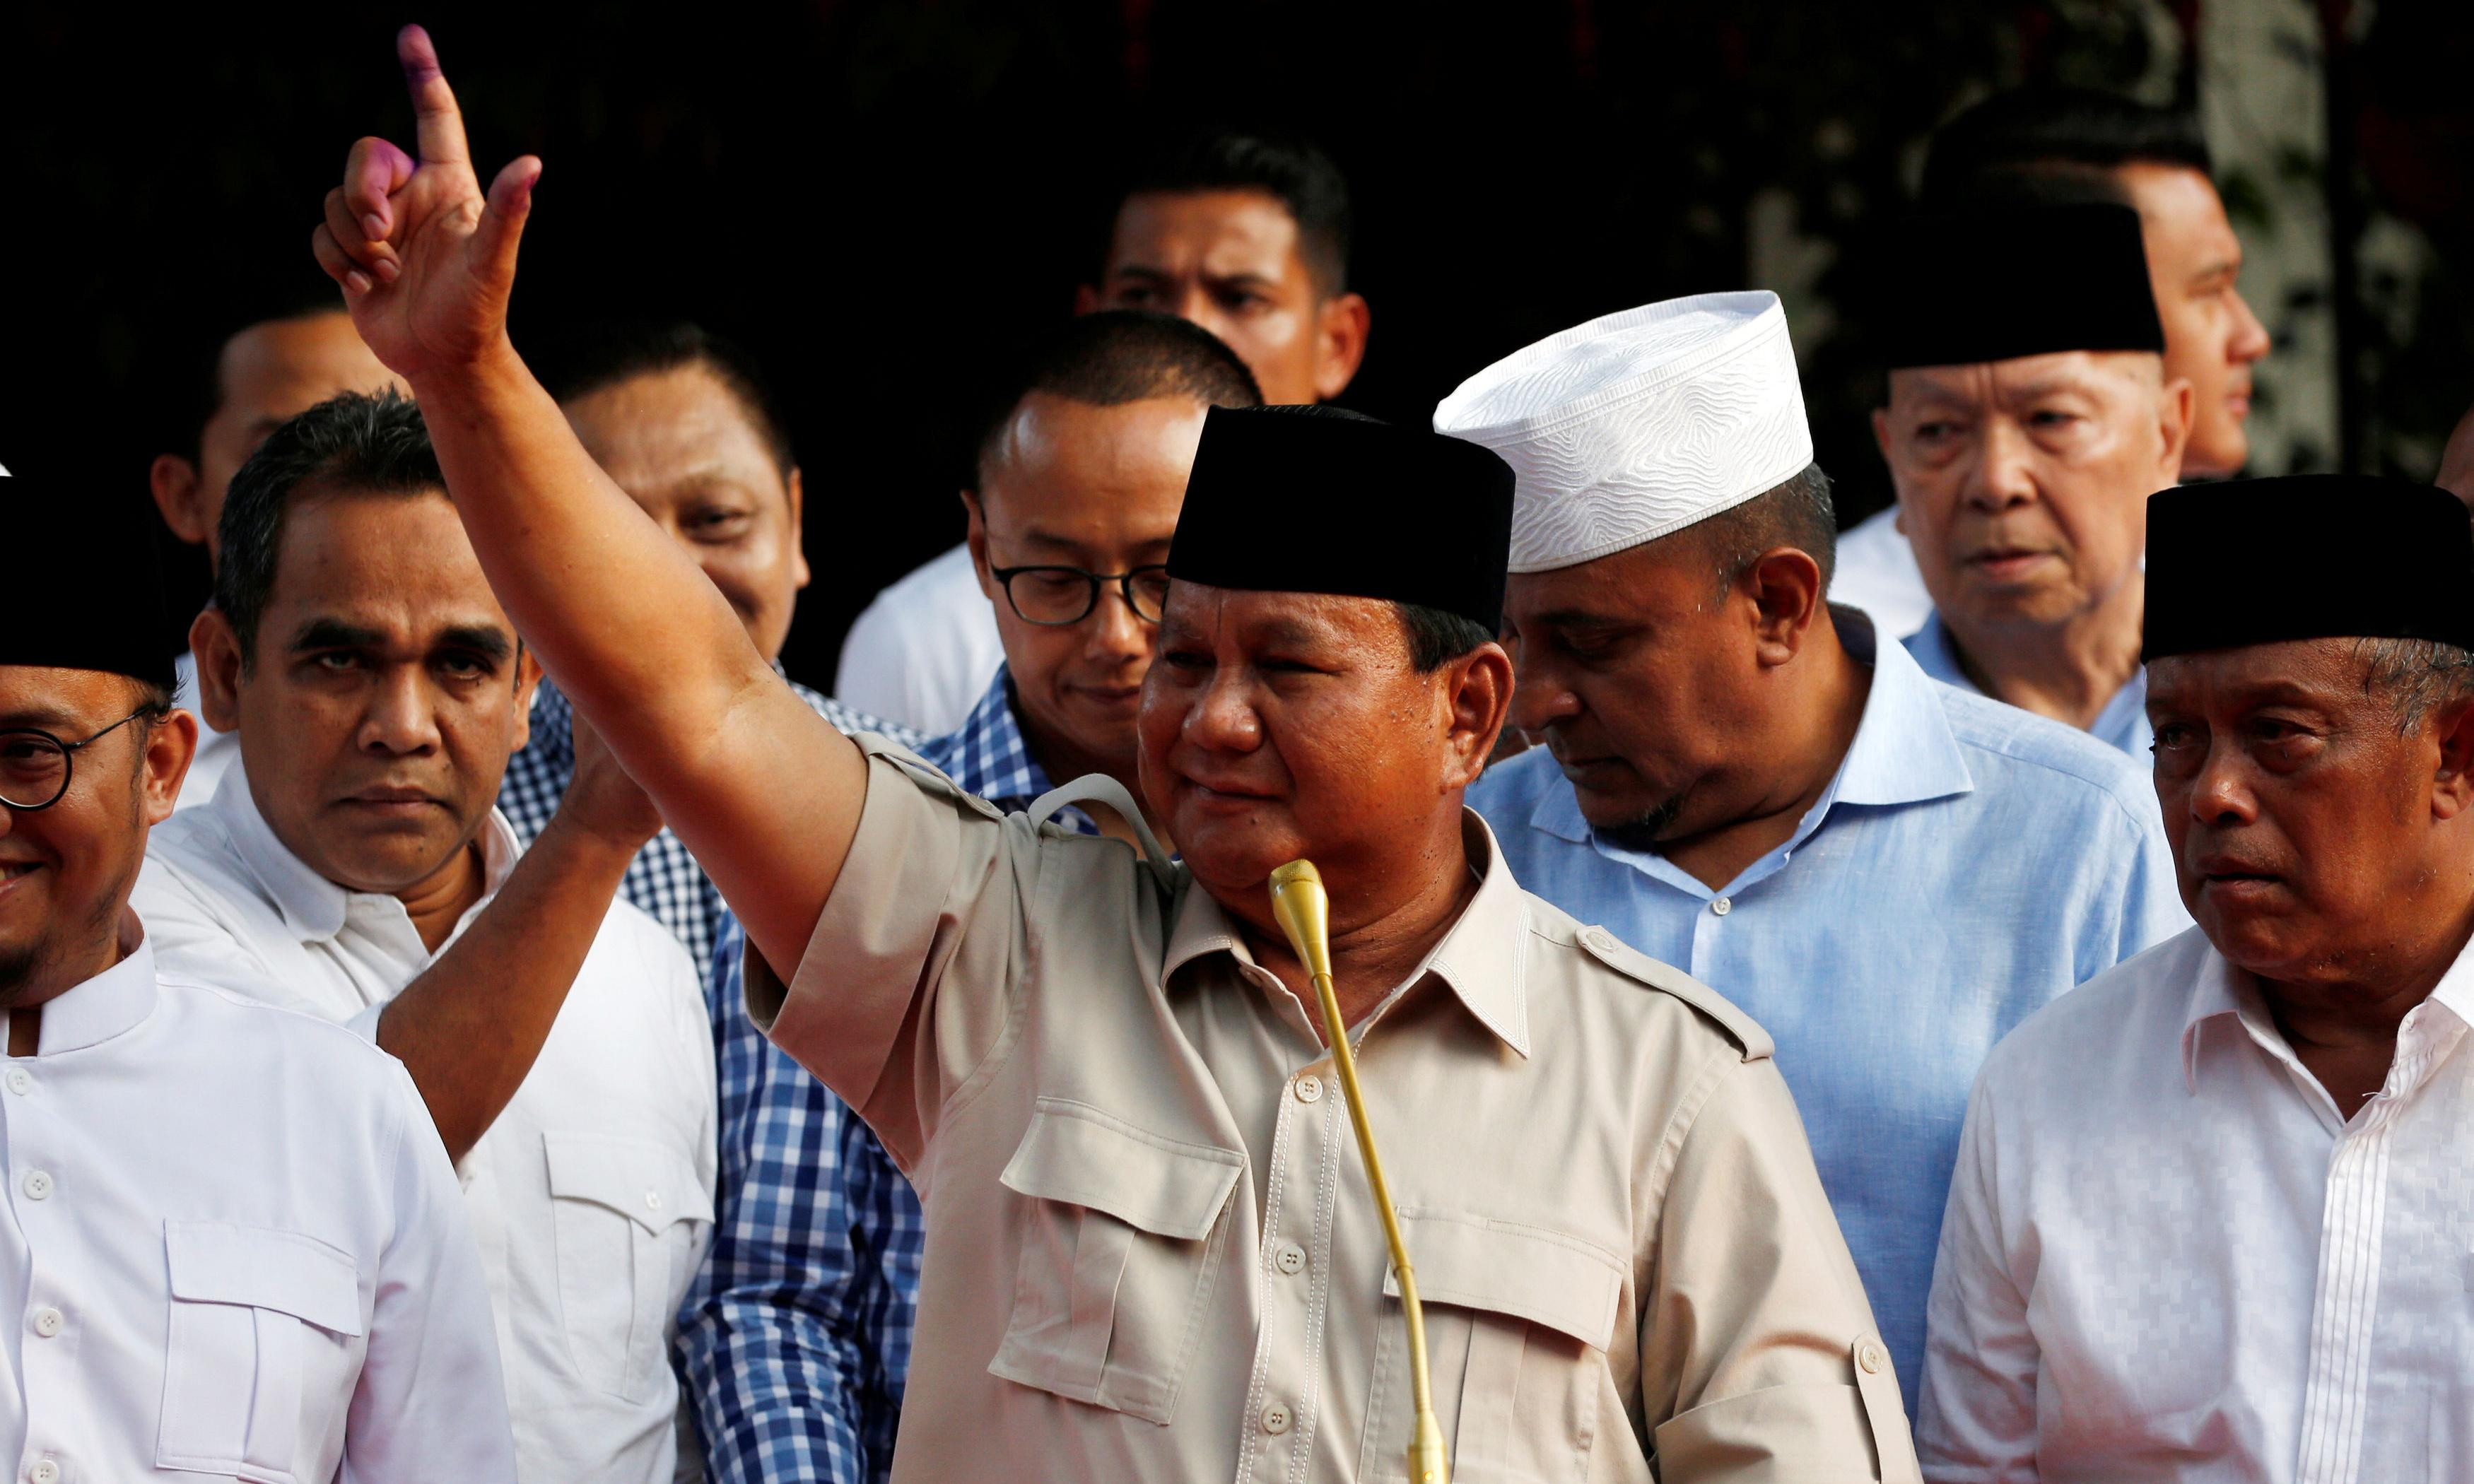 Indonesia election: Prabowo claims victory despite early counts showing loss